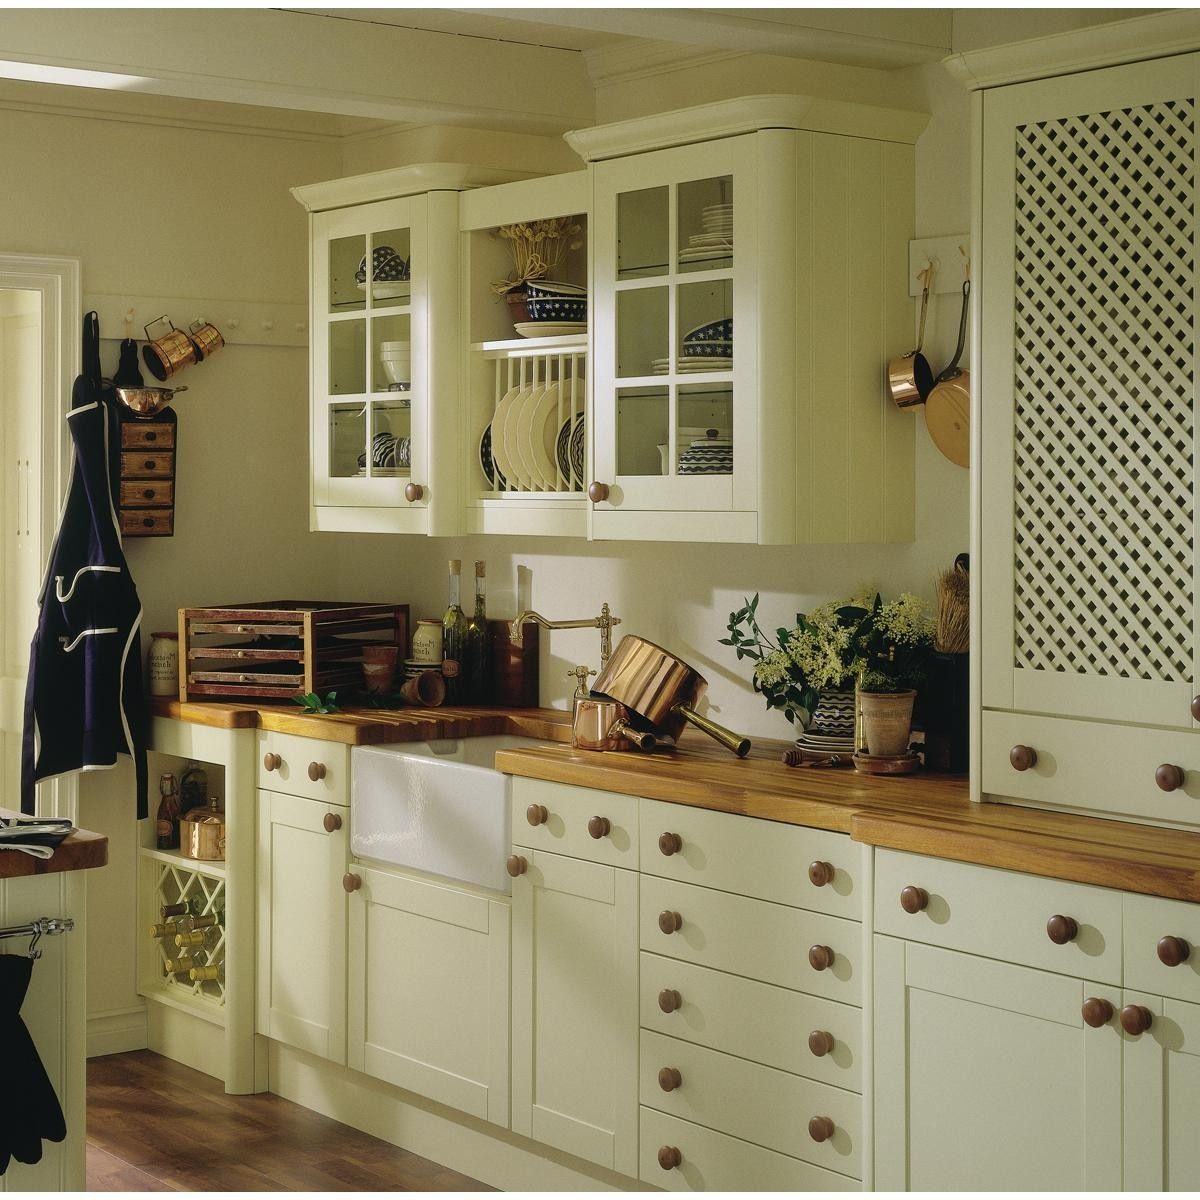 I really like the wall units in this kitchen.